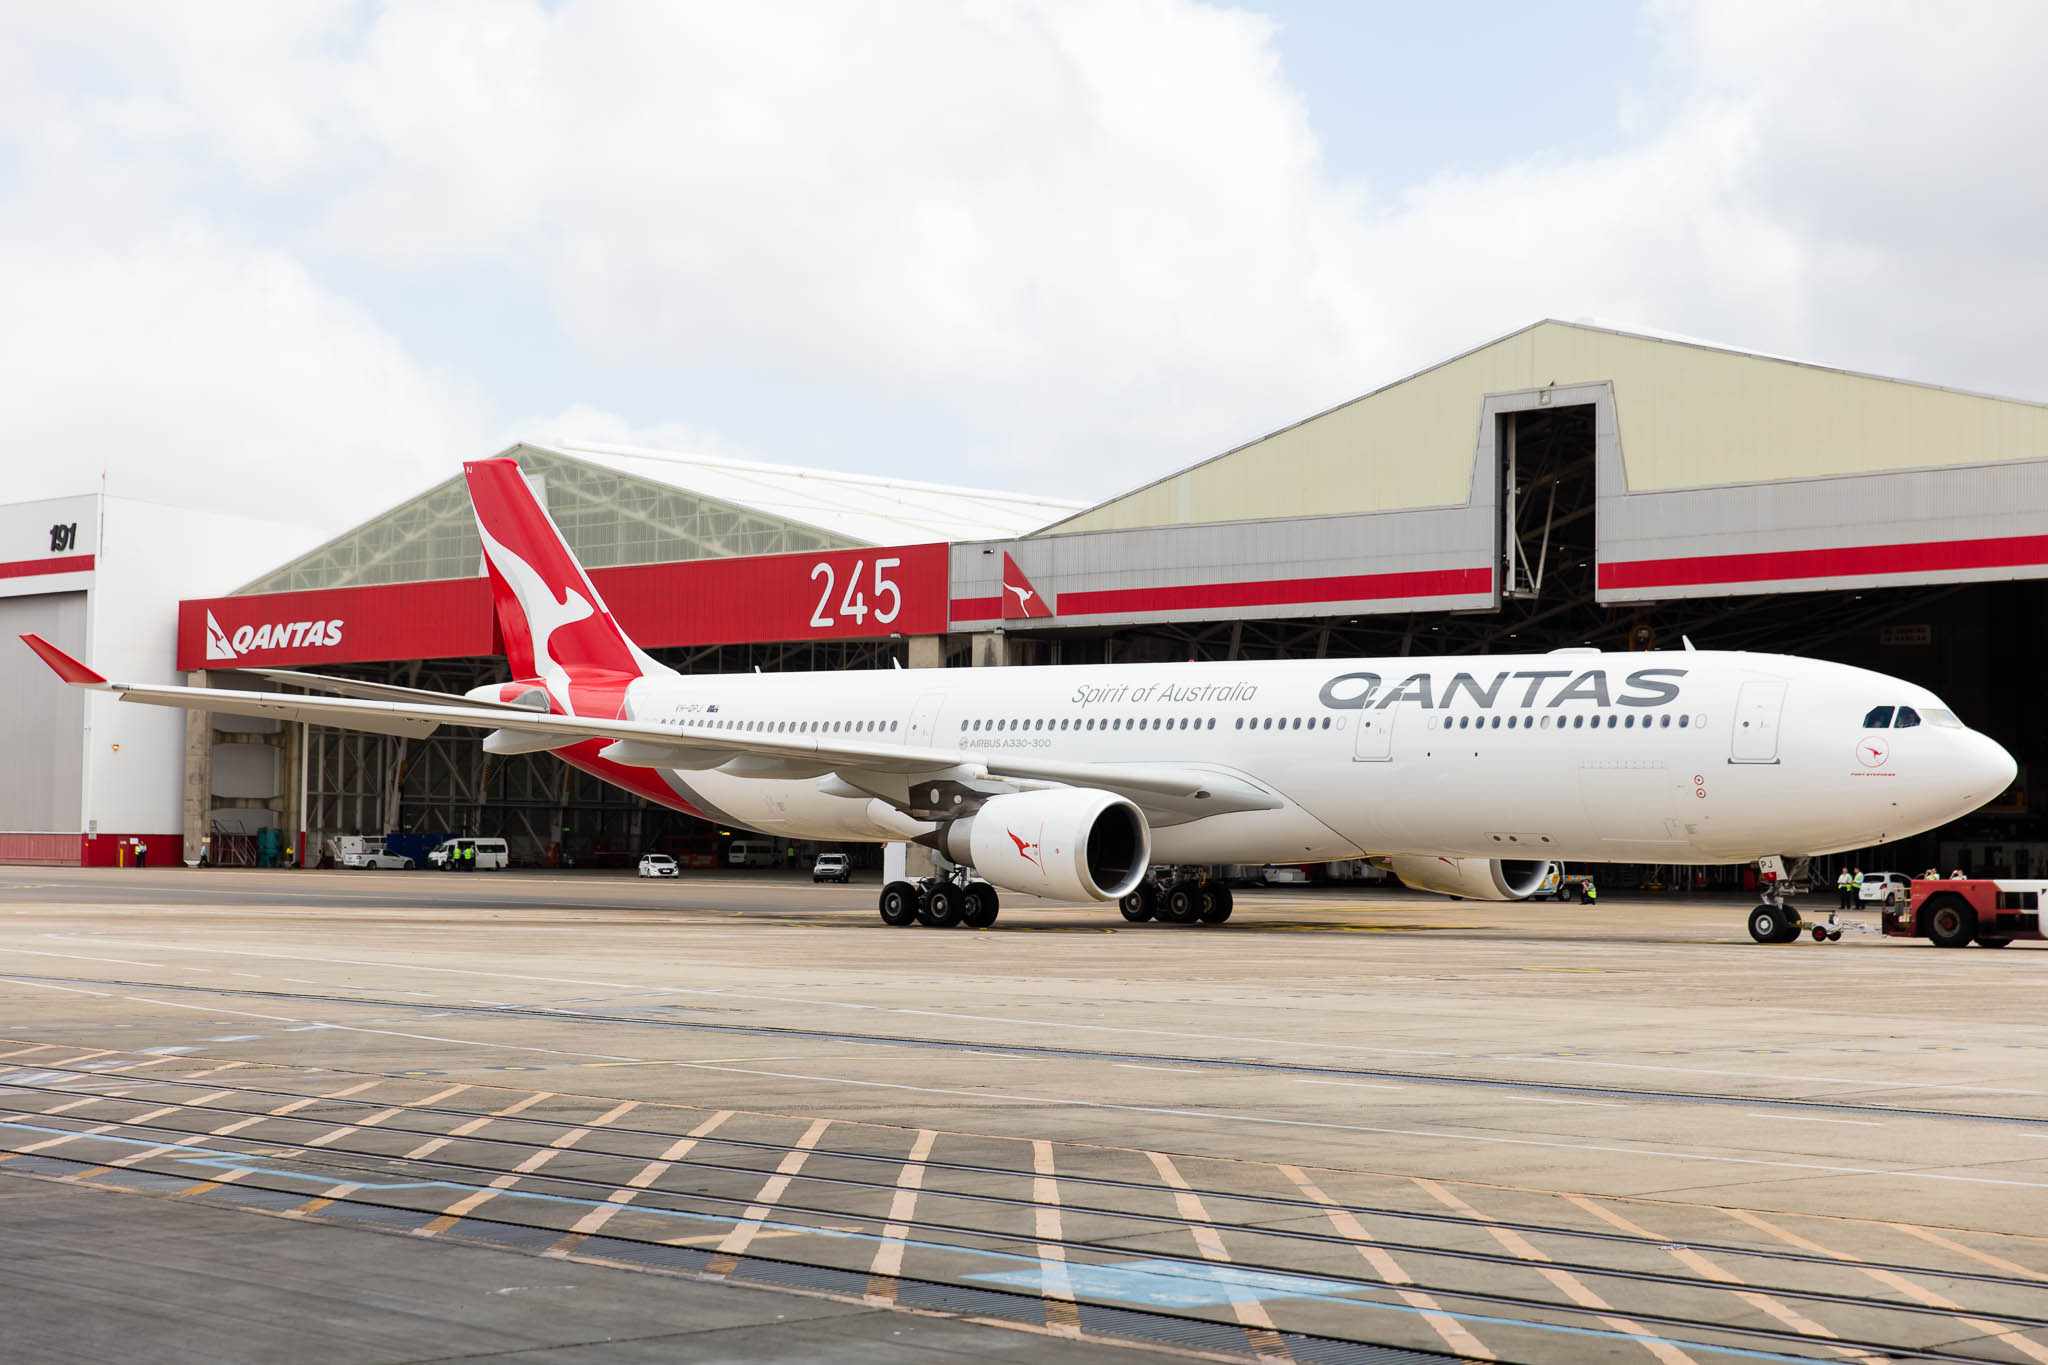 Qantas New Livery © Zac George